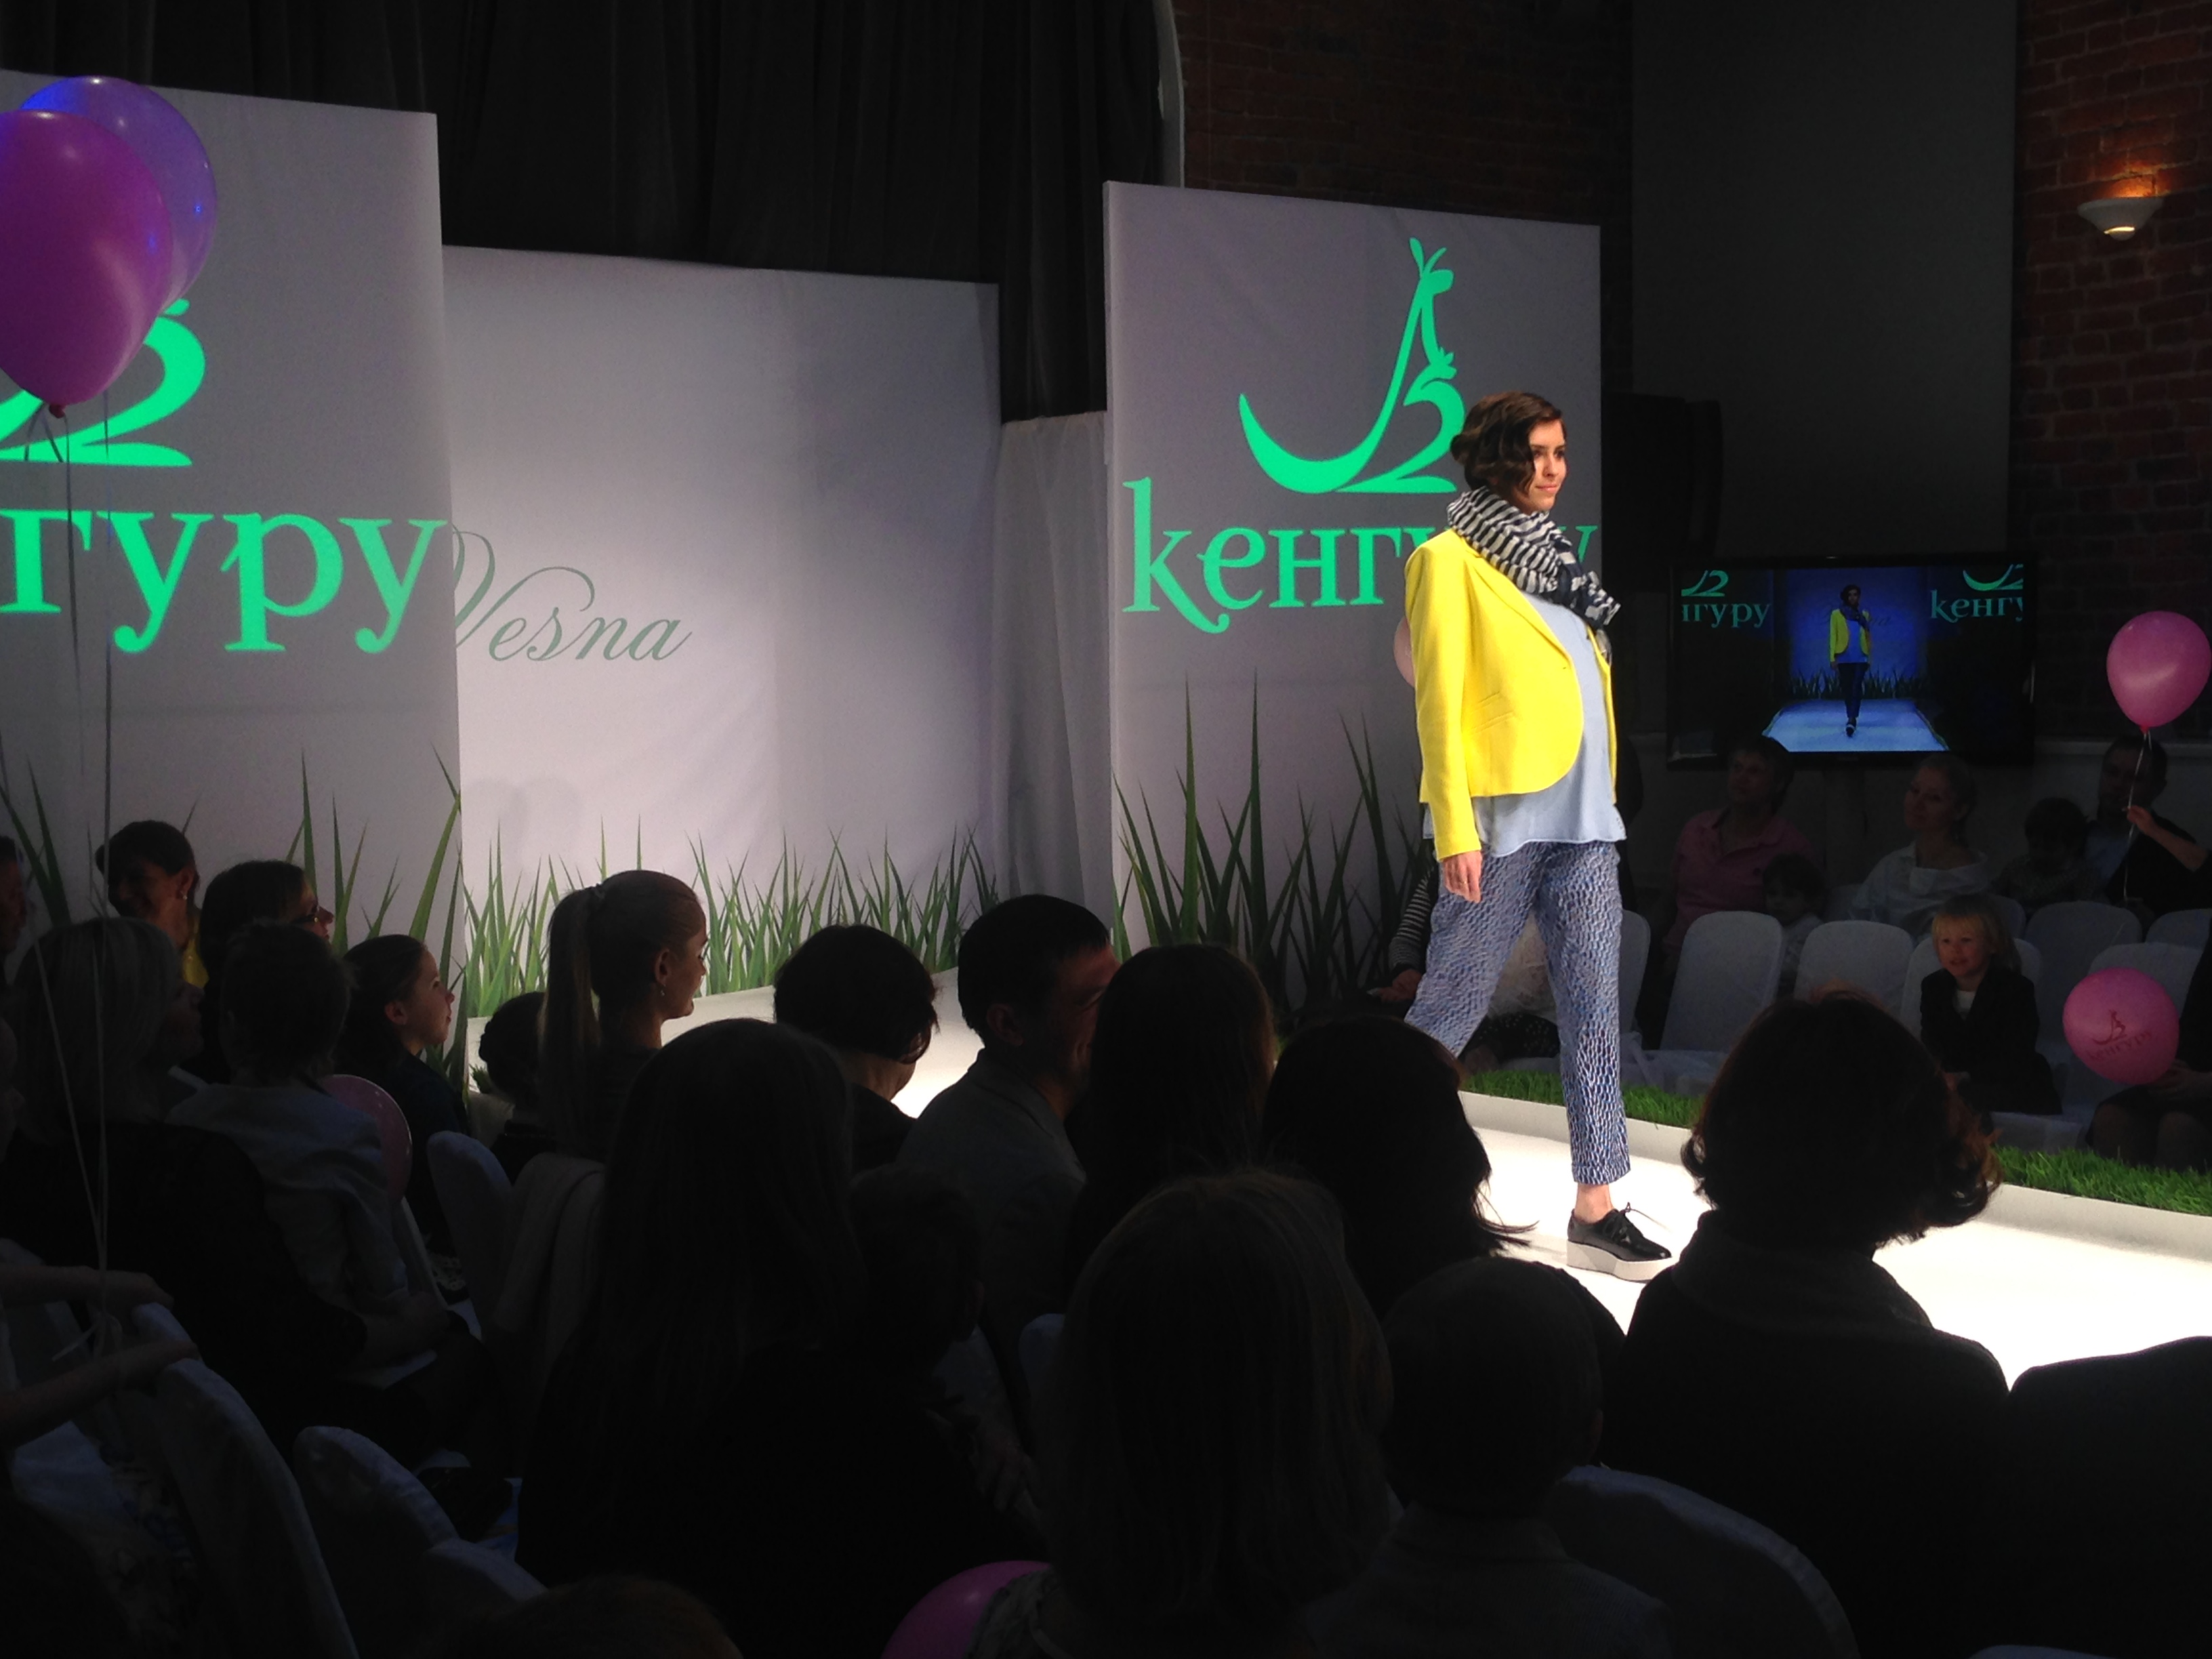 Styling Kenguru for fashion show